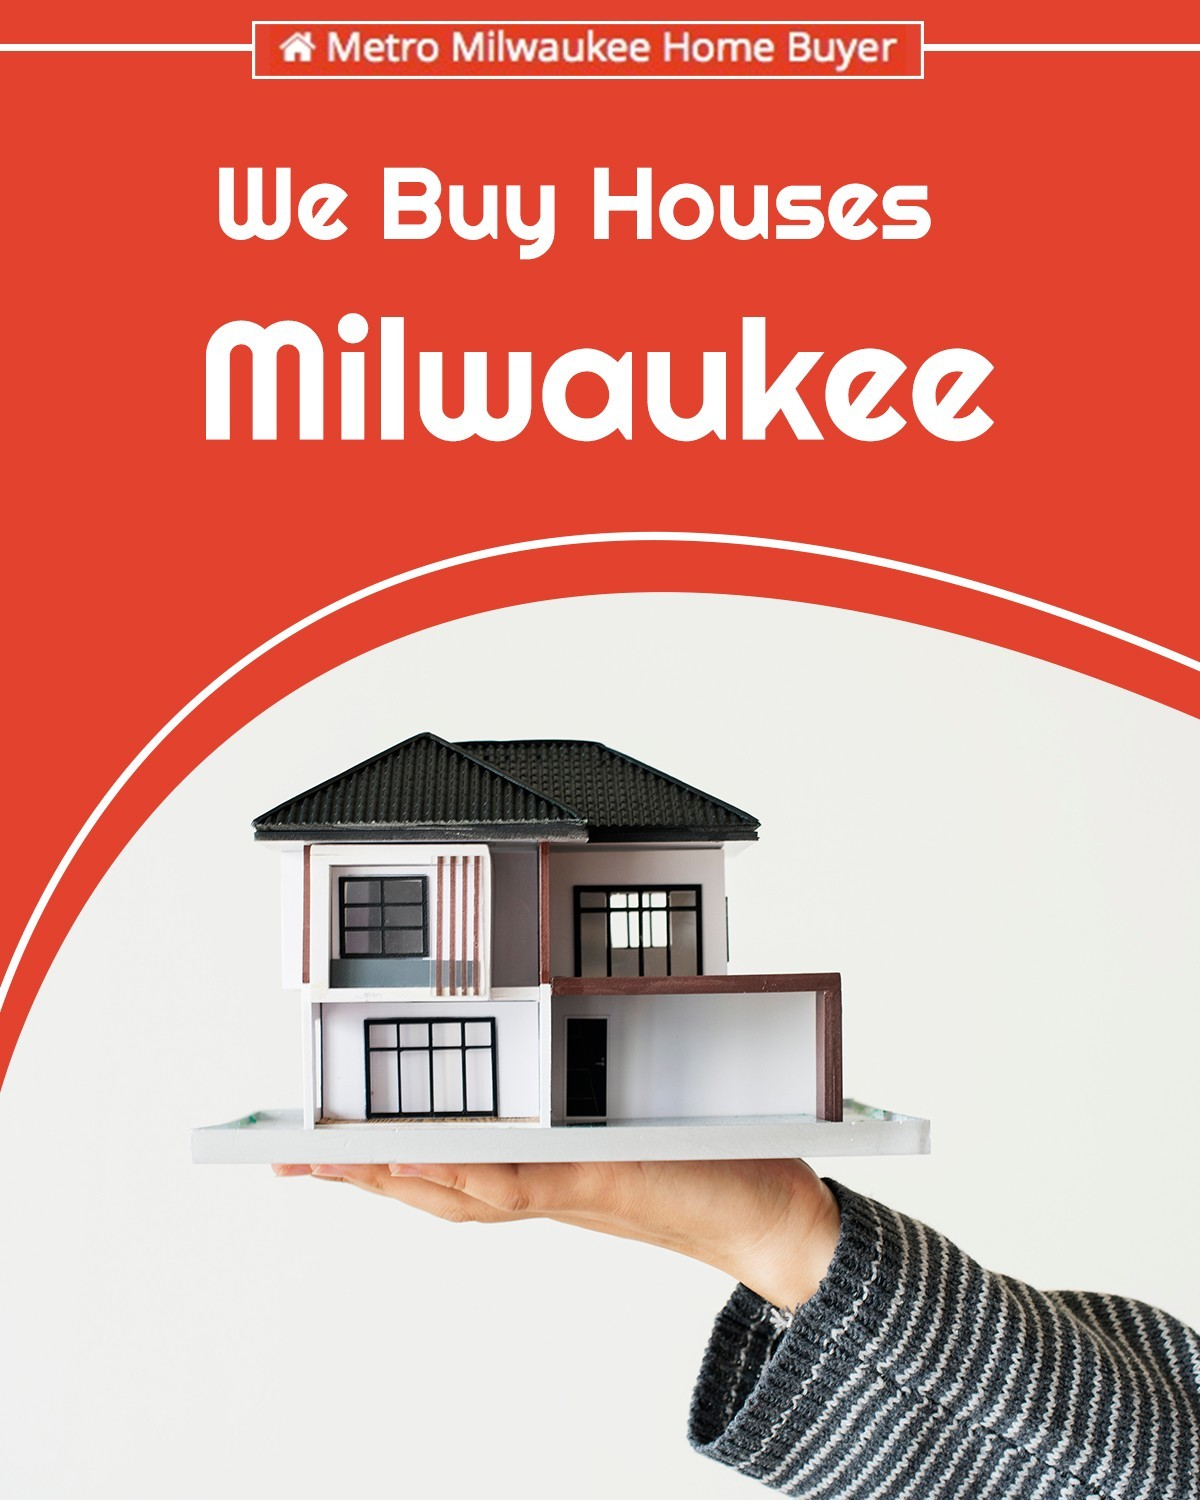 We Buy Houses in Milwaukee | No Hassle, No Obligation